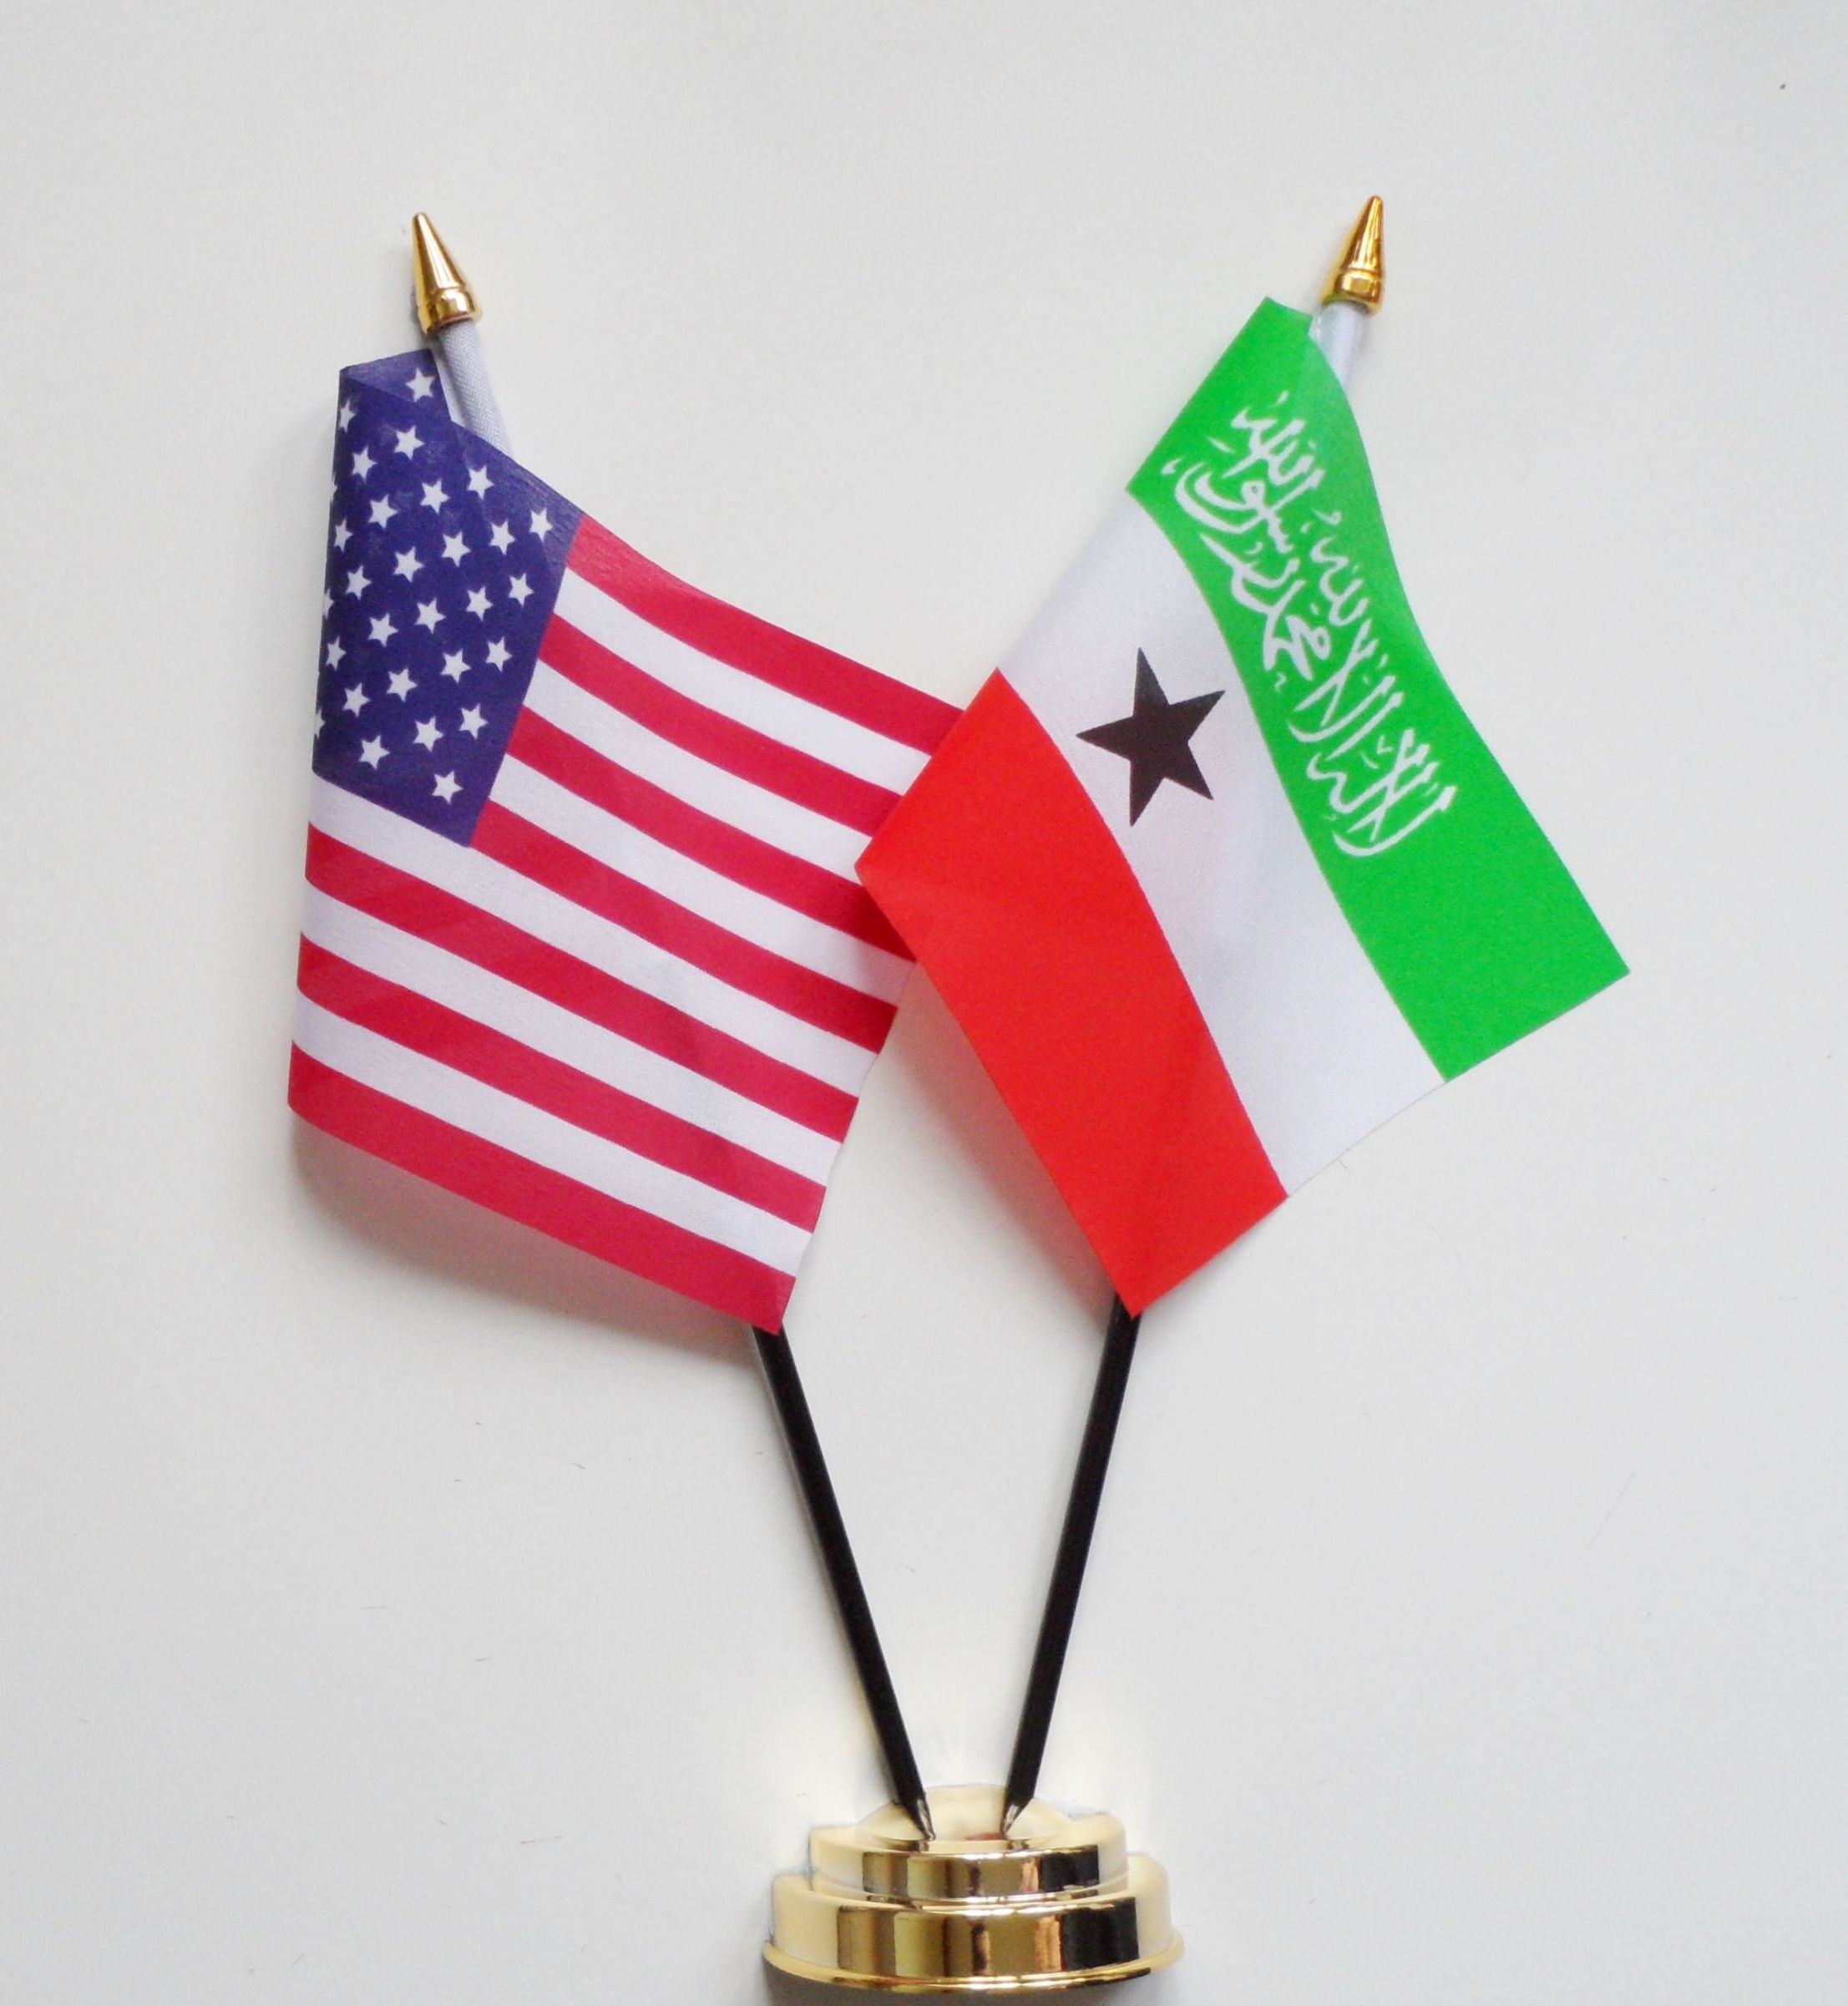 http://www.1000flags.co.uk/ekmps/shops/1000flagsuk/images/united-states-of-america-somaliland-friendship-table-flag.-30584-p.jpg